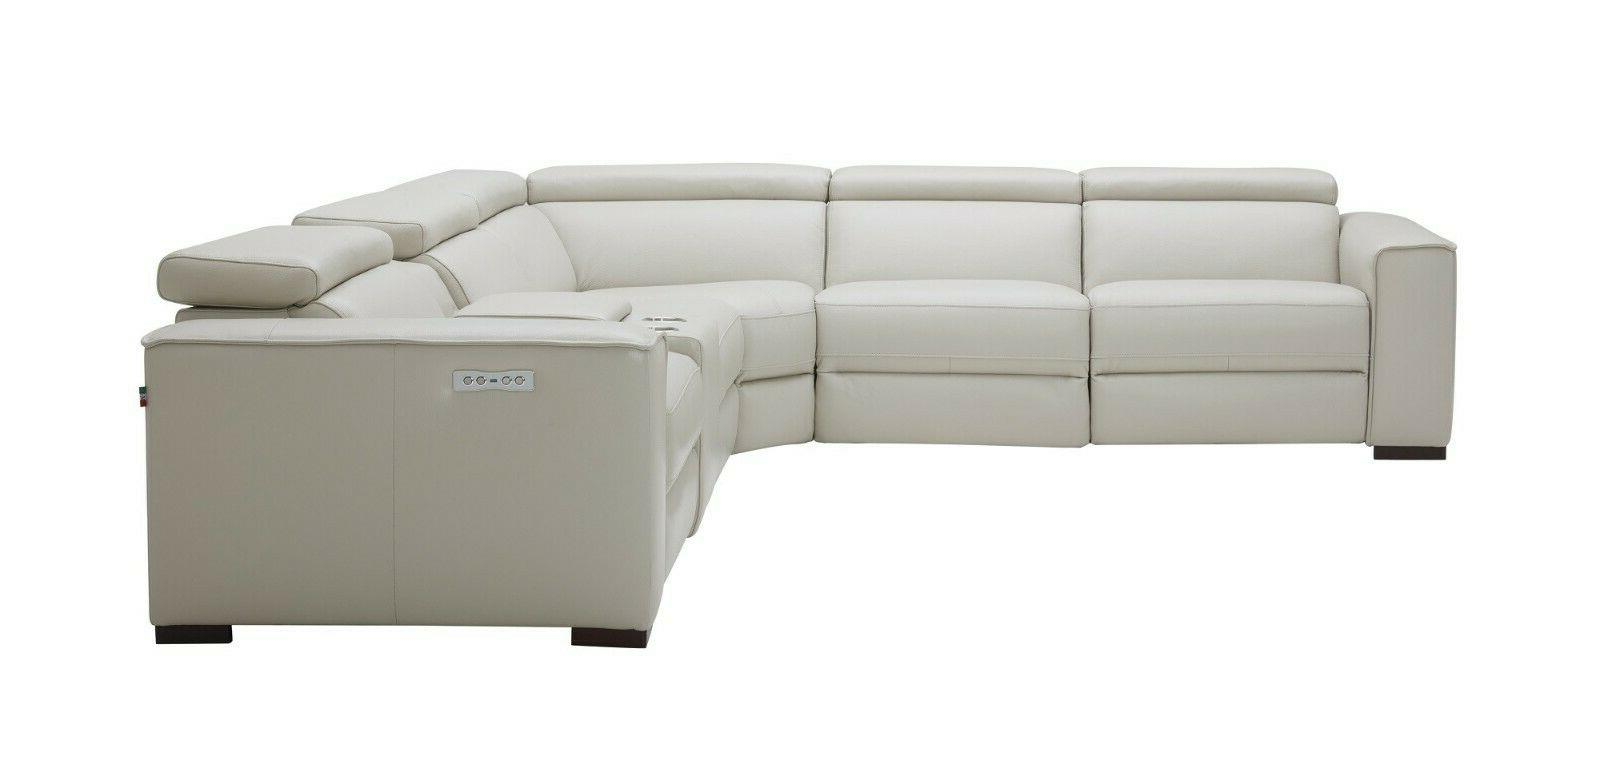 J&M Furniture Picasso Light Motion Sectional Sofa Piece